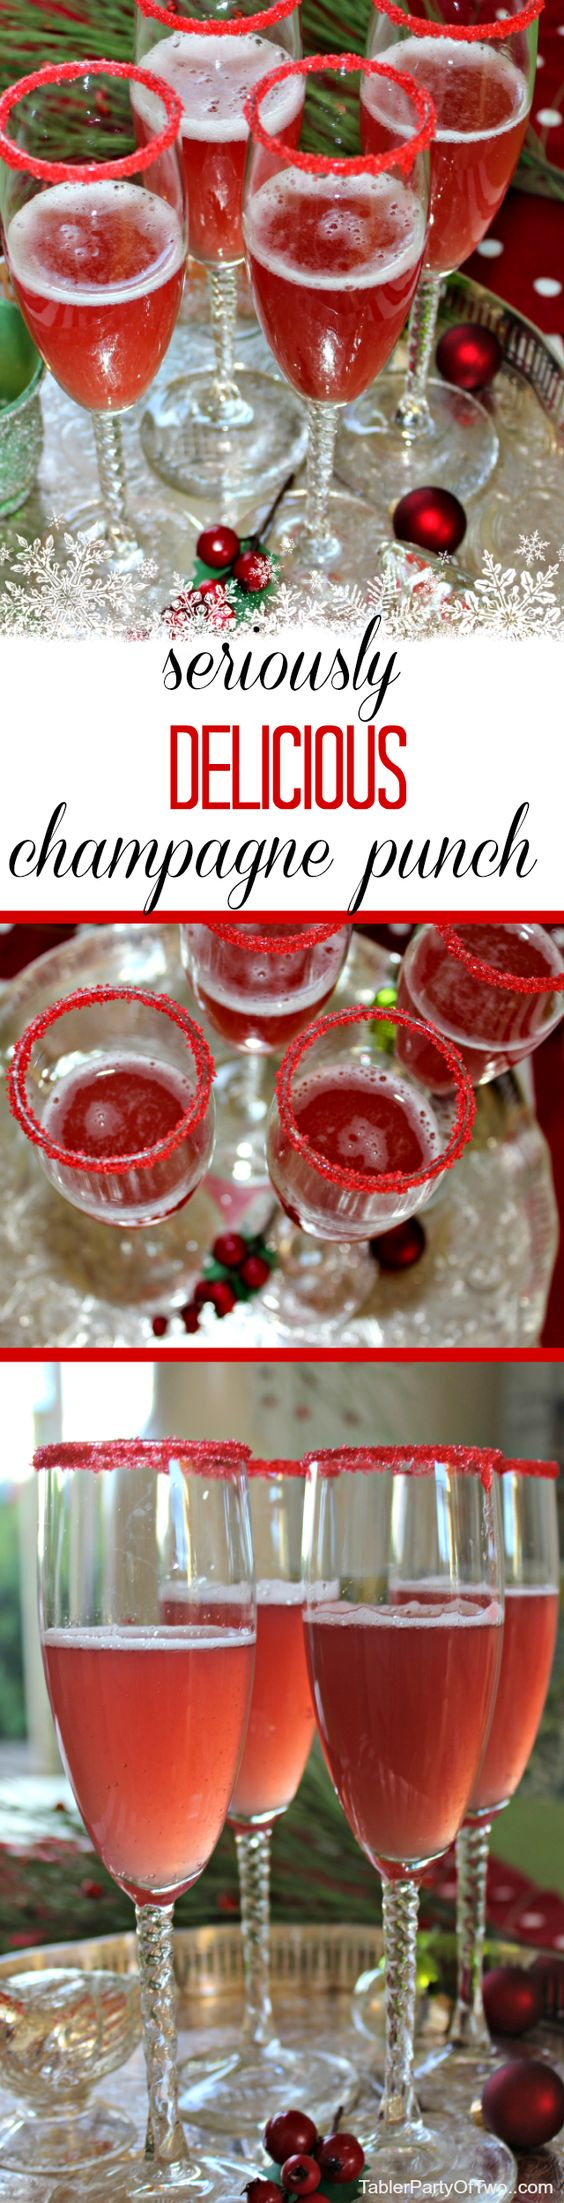 Seriously Delicious Champagne Punch easy to make, beautiful and a total crowd pleaser! (Brought to you by Hidden Valley)